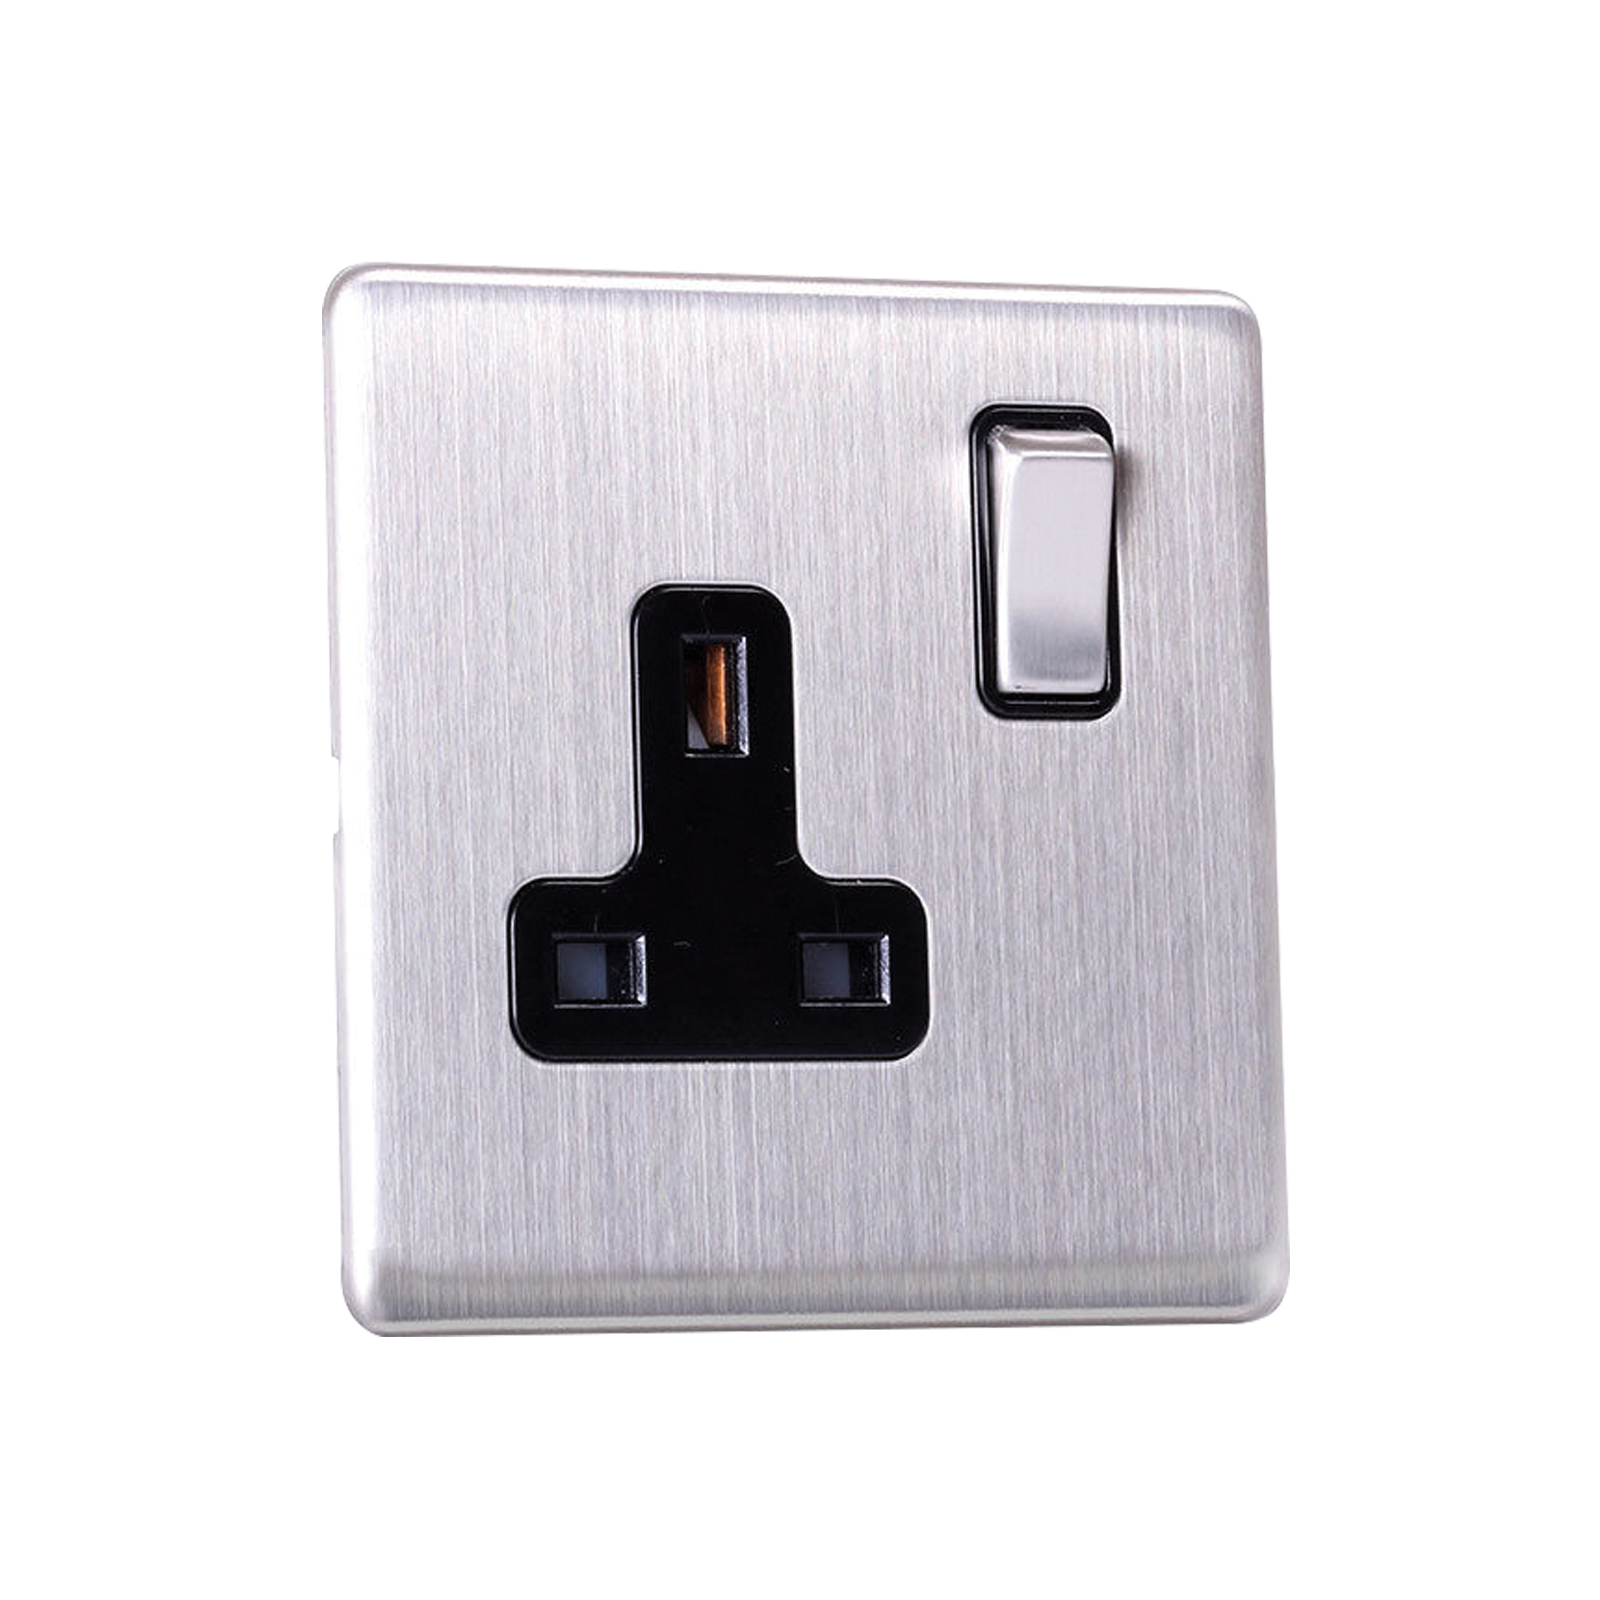 Wiring Accessories Chint Europe Uk Ltd Electrical List Hidden Fixings Slimline Appearance